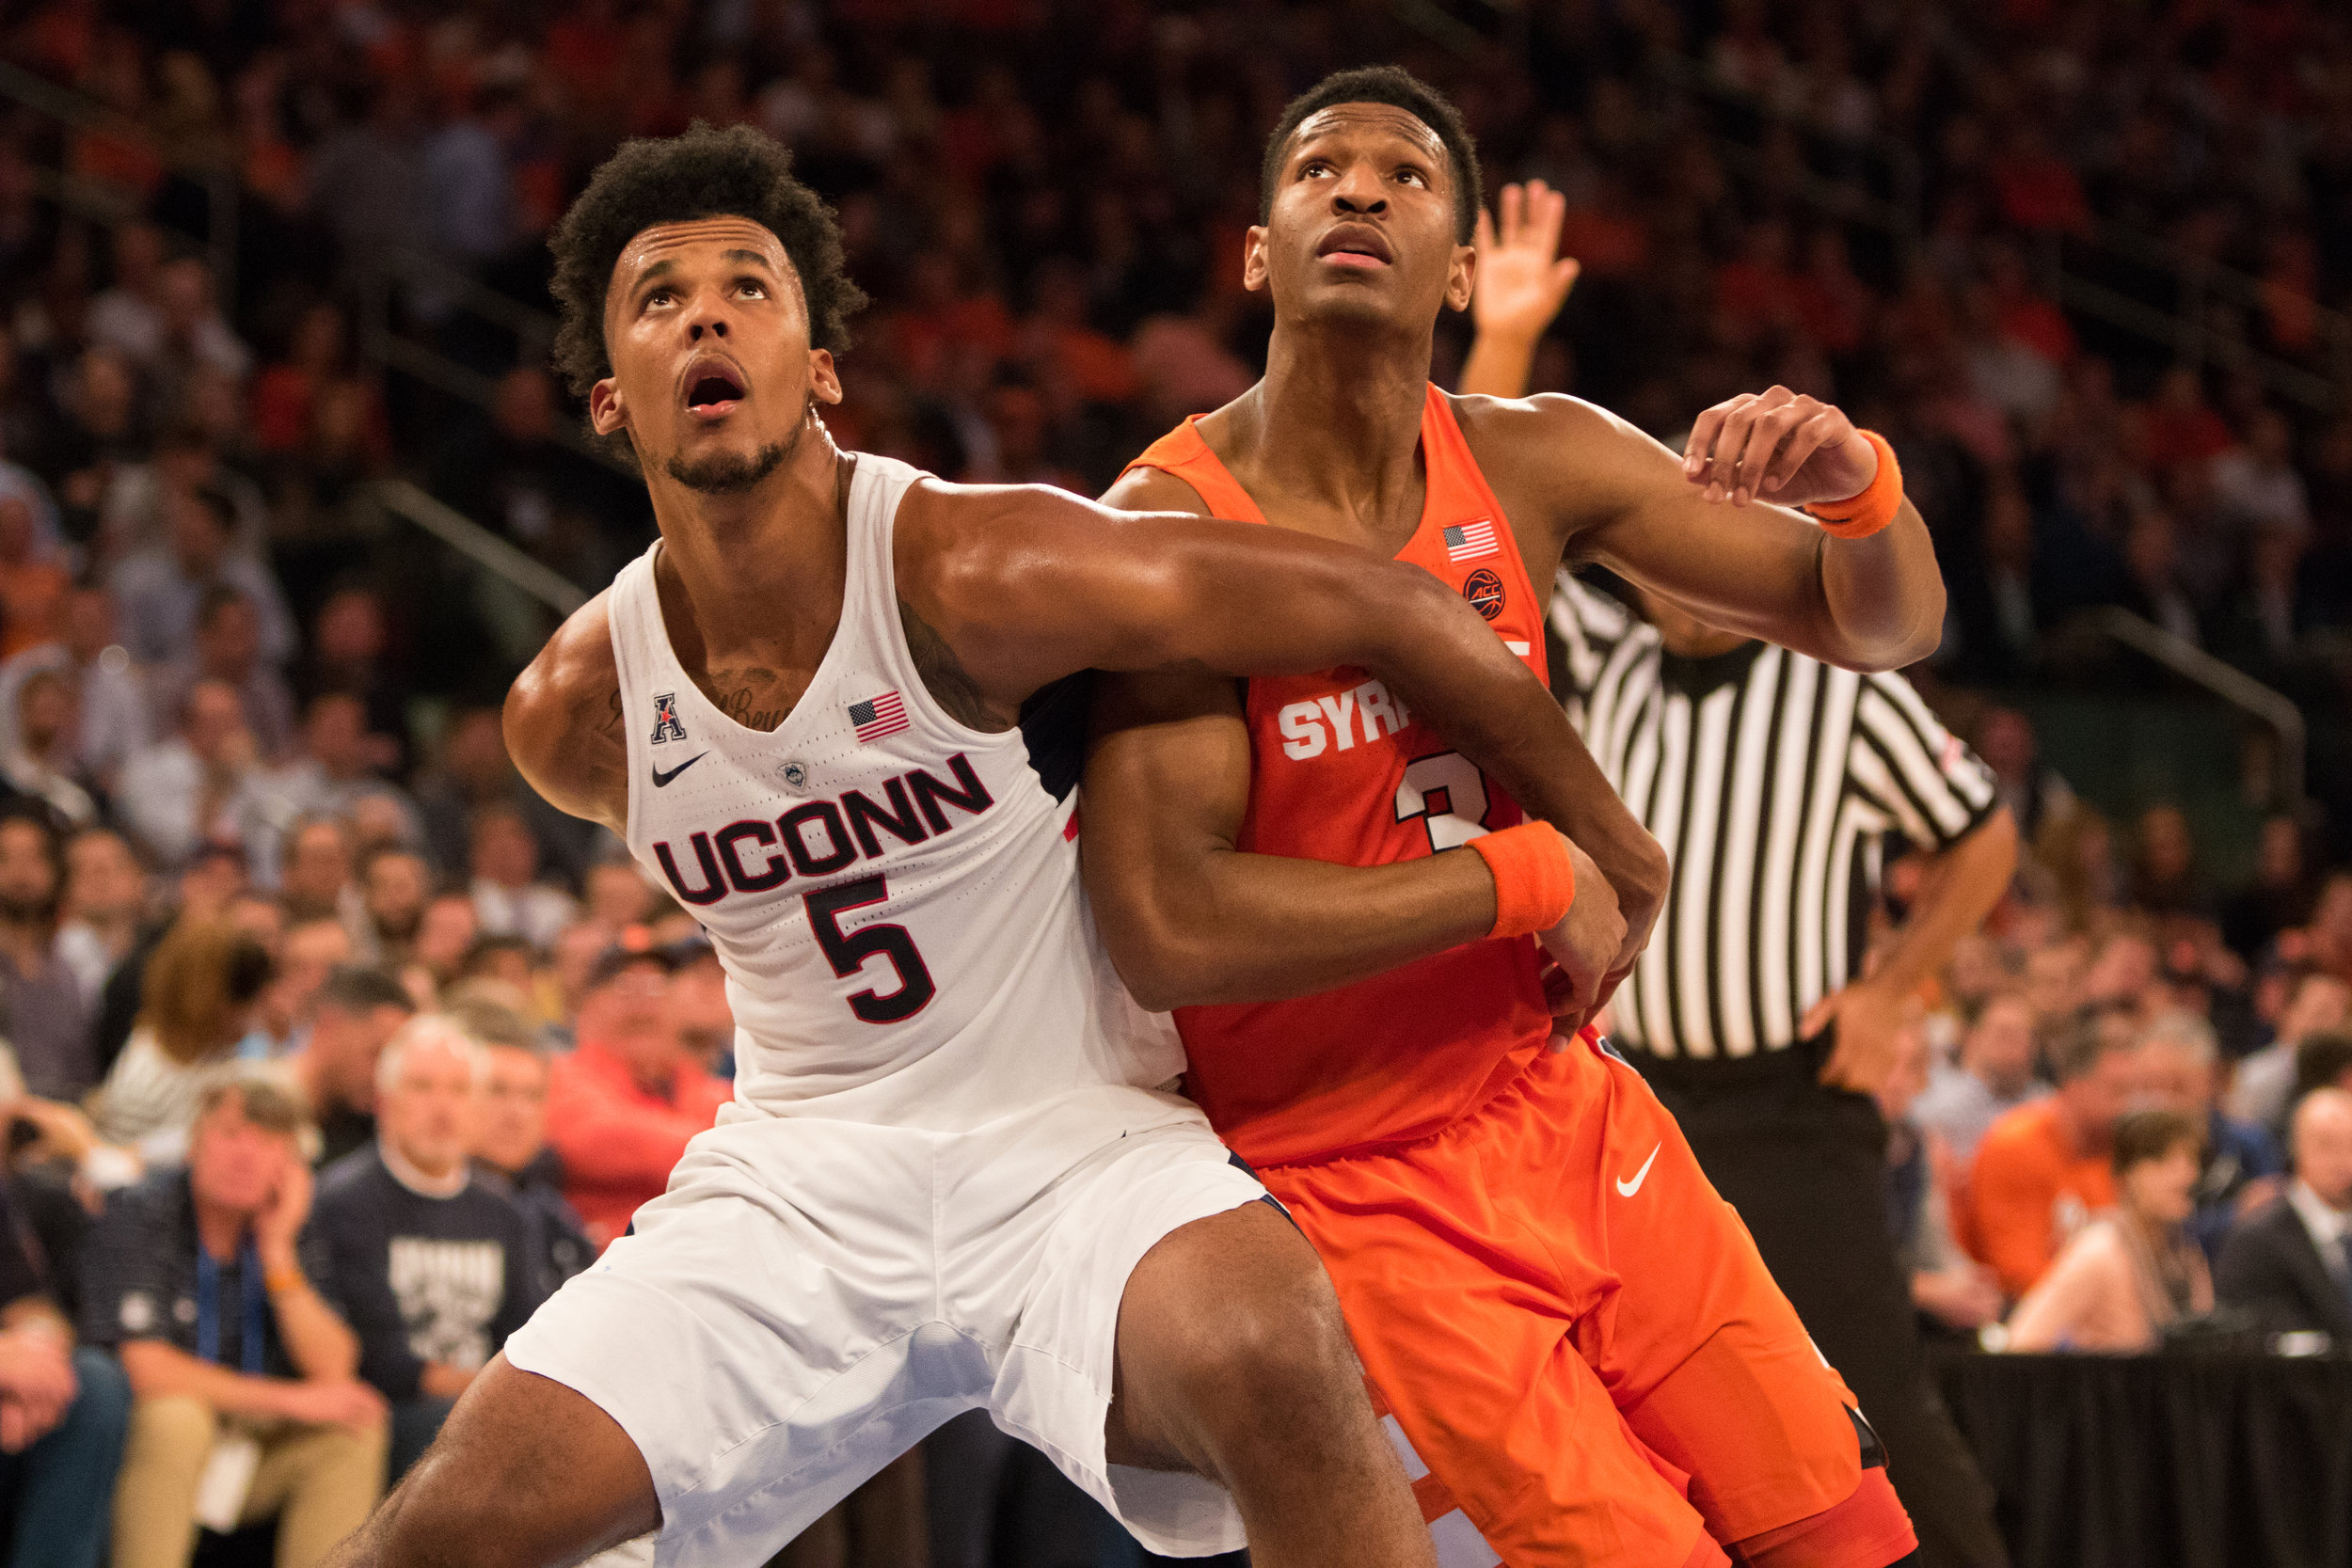 UConn forward Vance Jackson tries to get position against a Syracuse defender during a game at Madison Square Garden in New Yok, N.Y. on Dec. 5, 2016. (Jackson Haigis, Photo Editor/The Daily Campus)